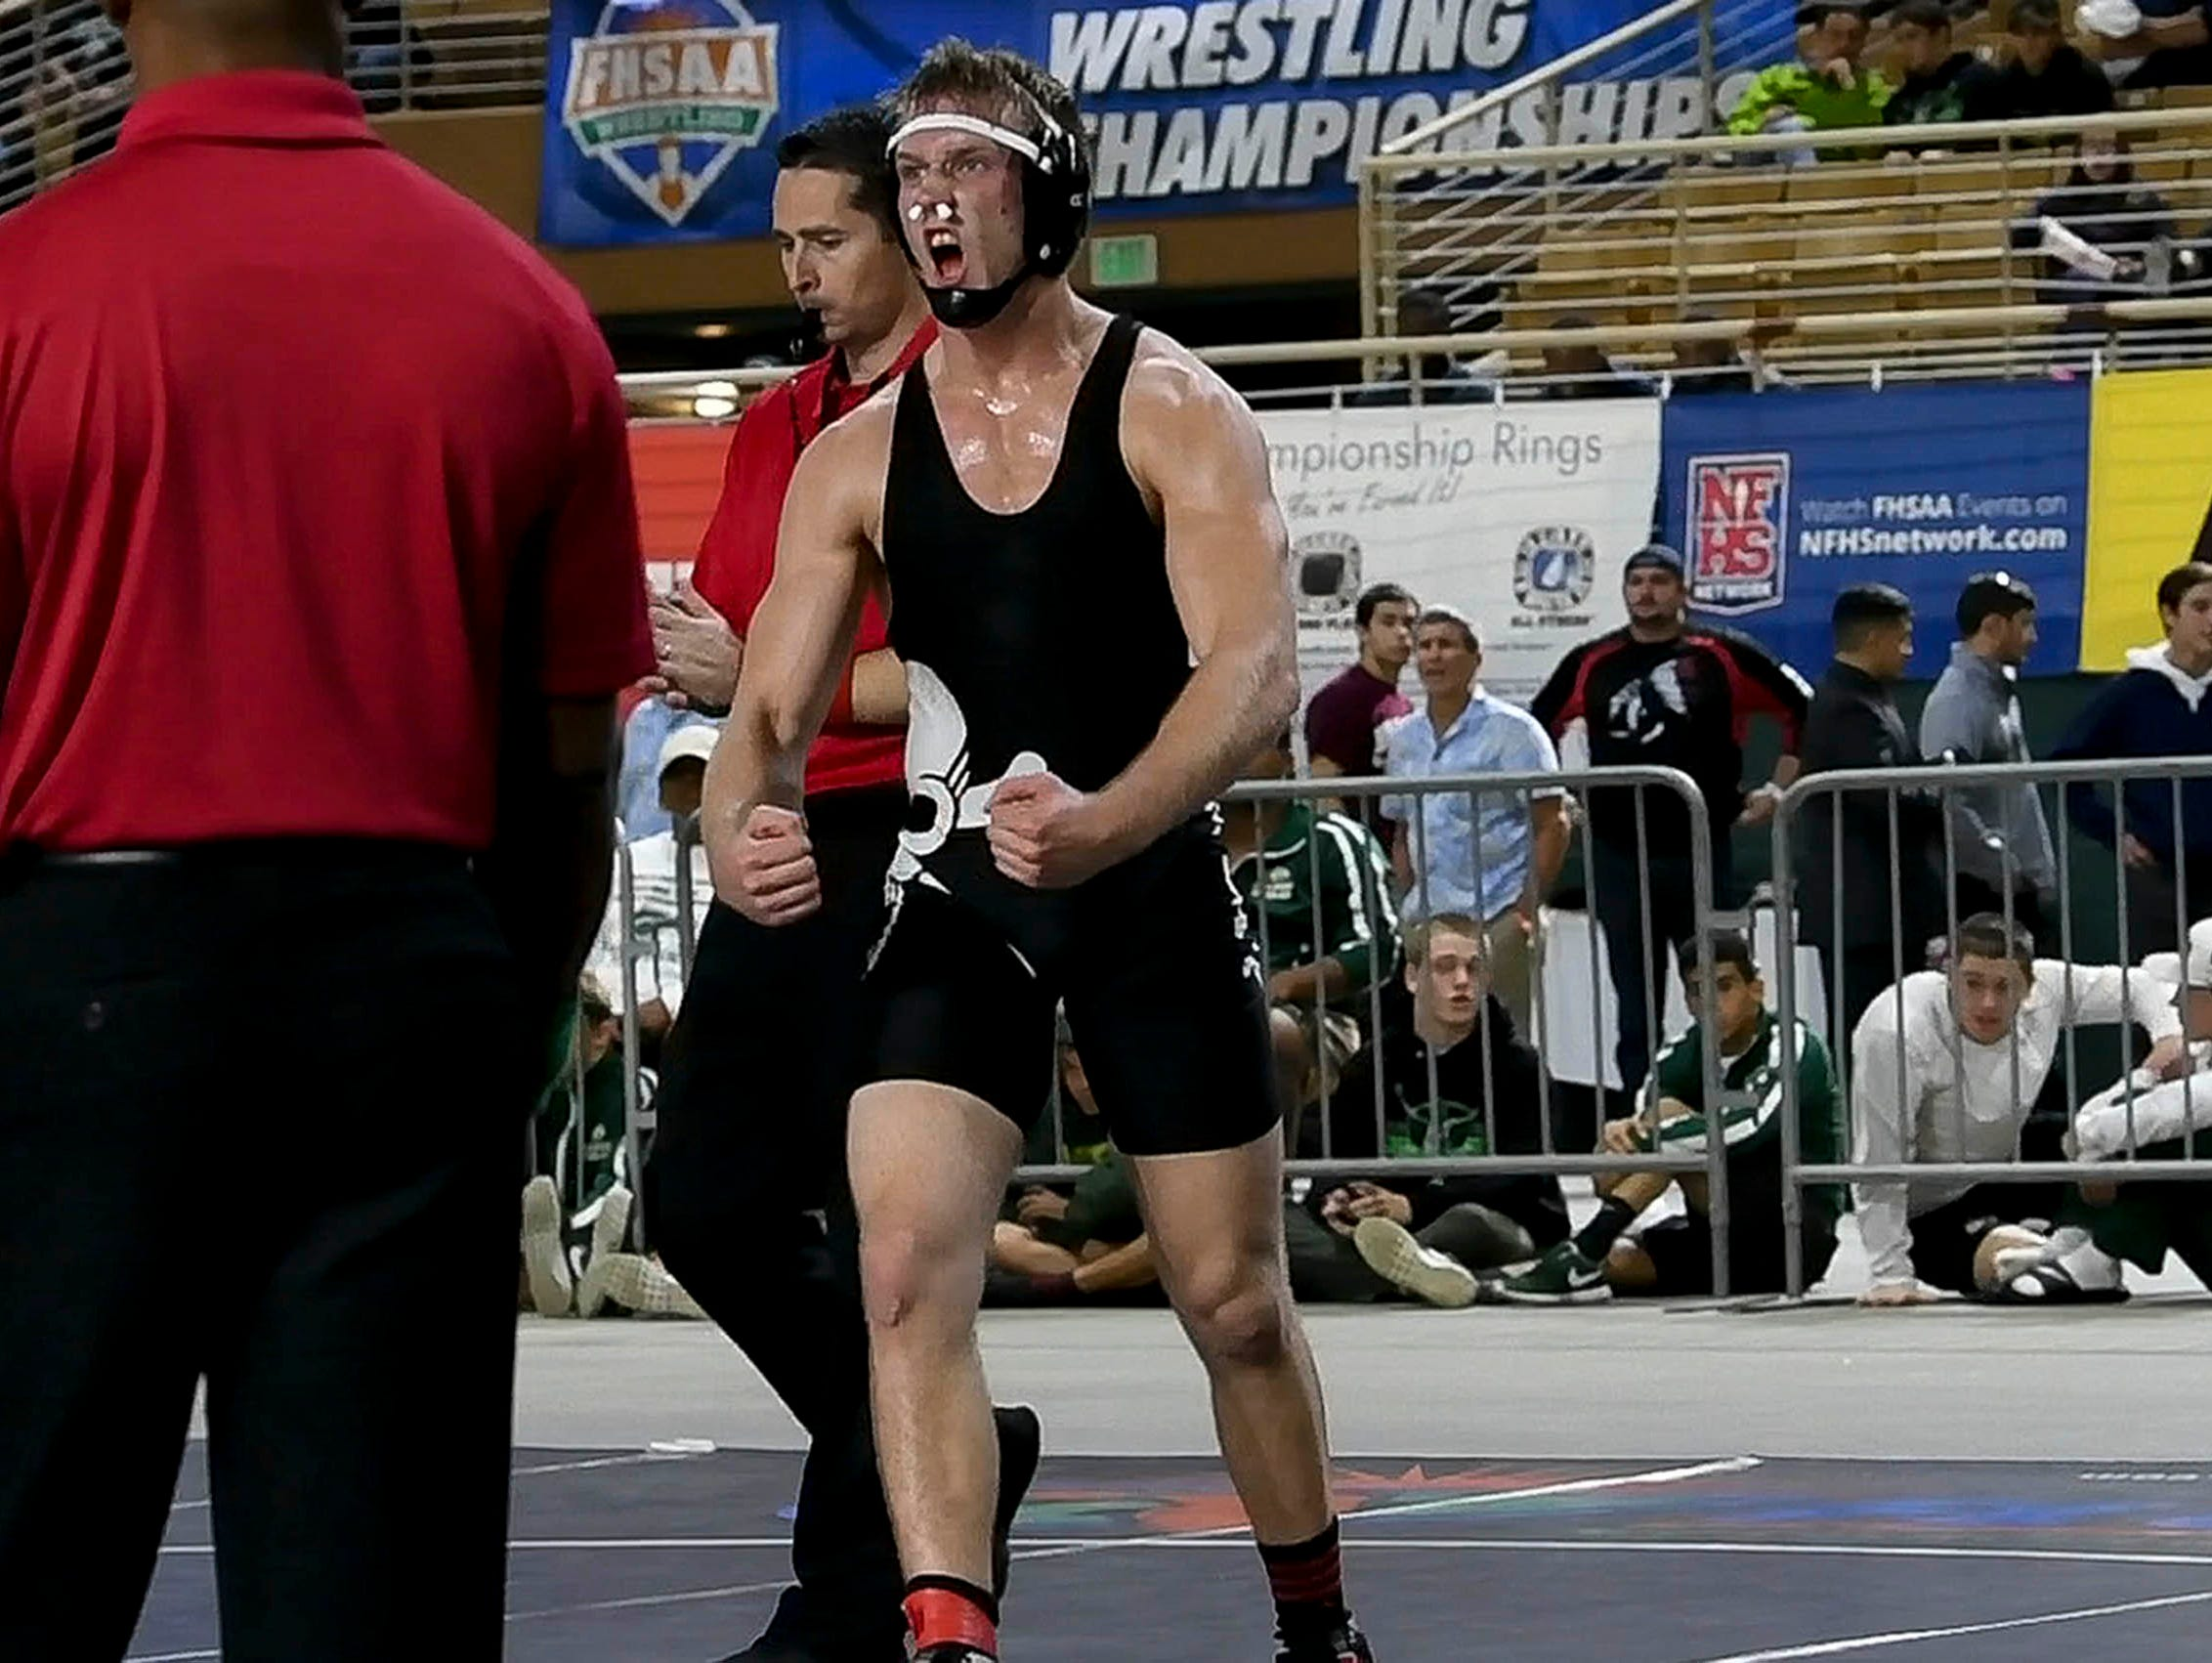 Matt Cates of Palm Bay defeats Natorian Lee of Orange Park for the state wrestling title at 170 pounds at the Class 2A state finals in Kissimmee.